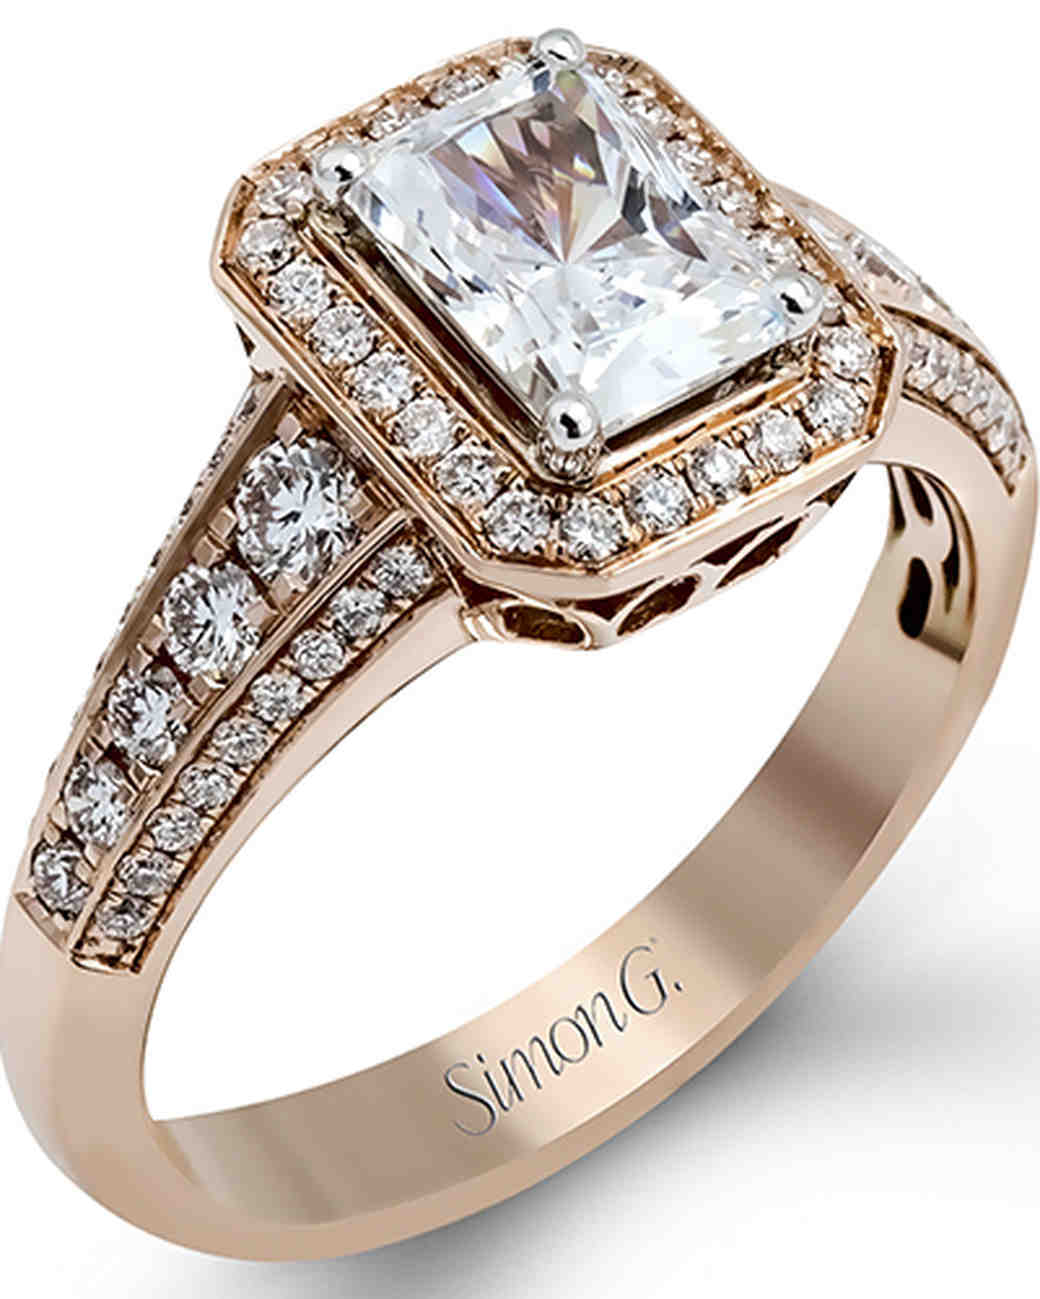 Simon G. Emerald-Cut Rose Gold Engagement Ring